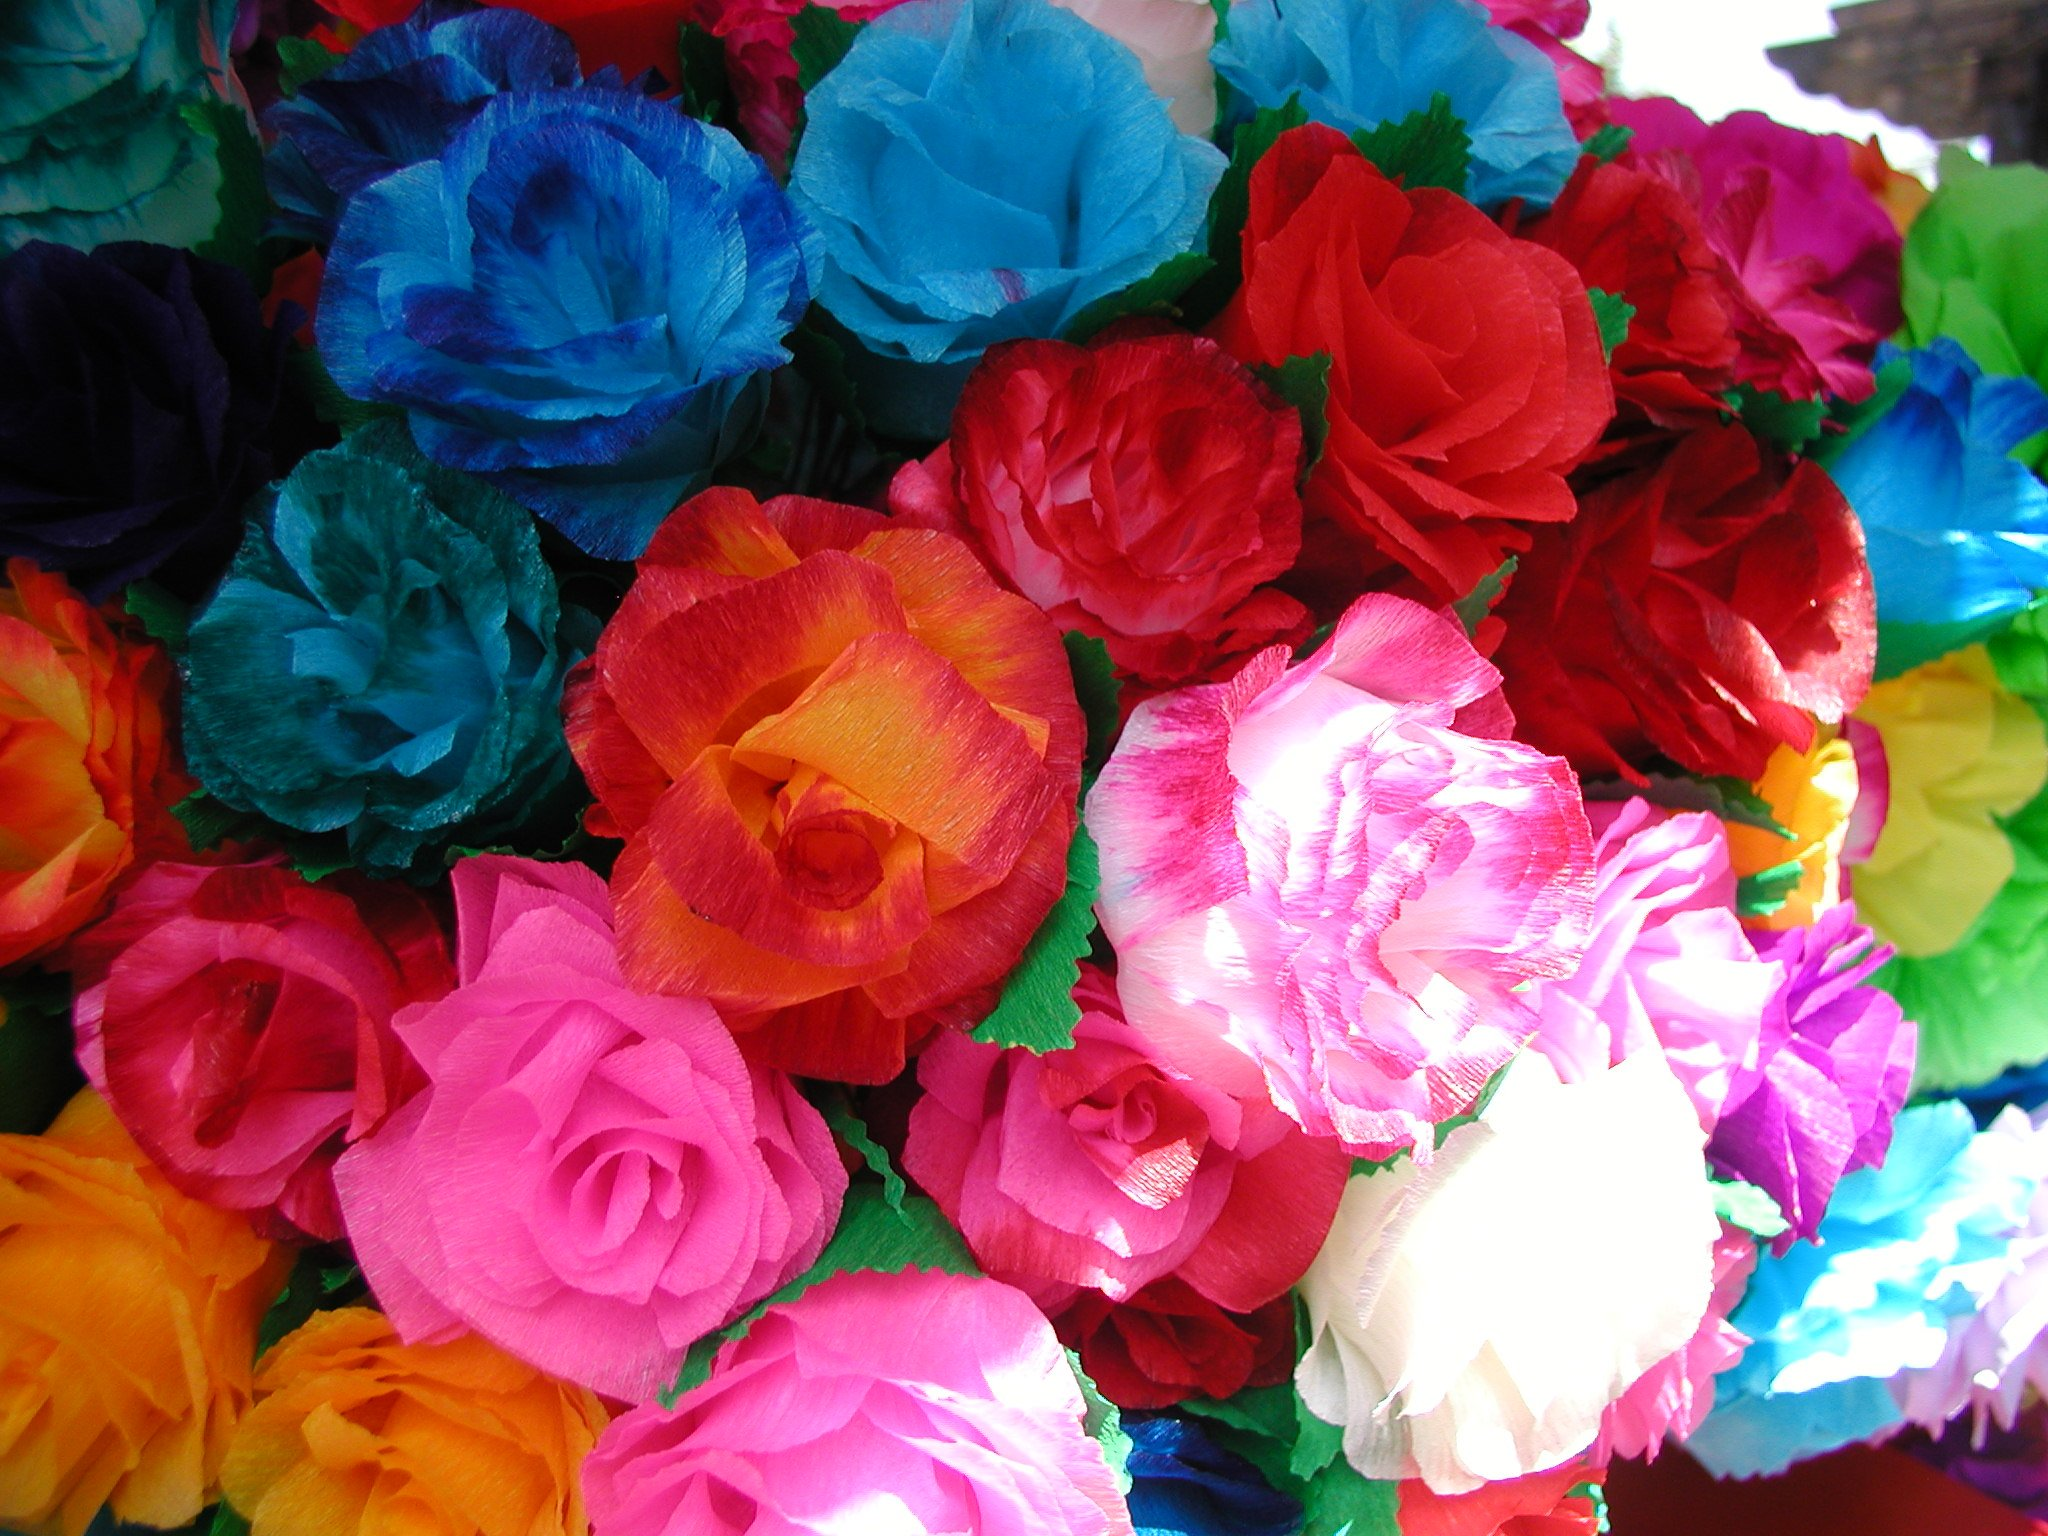 Paper Flowers That Smell Like The Real Deal Flower Pressflower Press